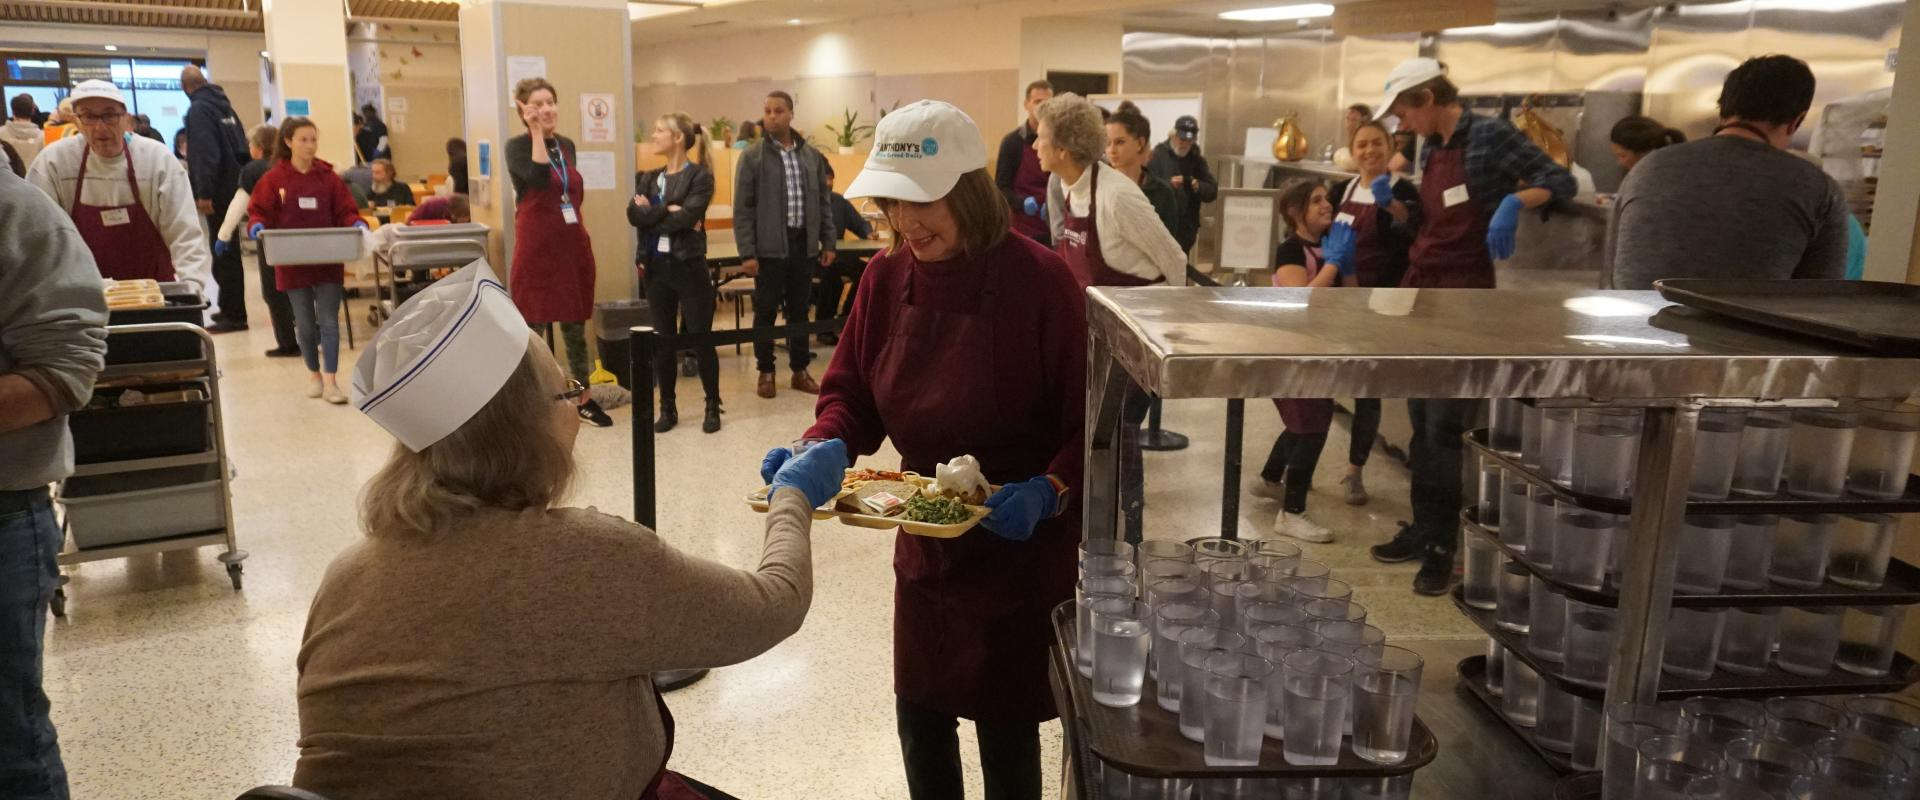 Congresswoman Pelosi joins her family in their annual tradition volunteering at St. Anthony's Dining Room in the Tenderloin to serve meals to our community during the Thanksgiving holiday.